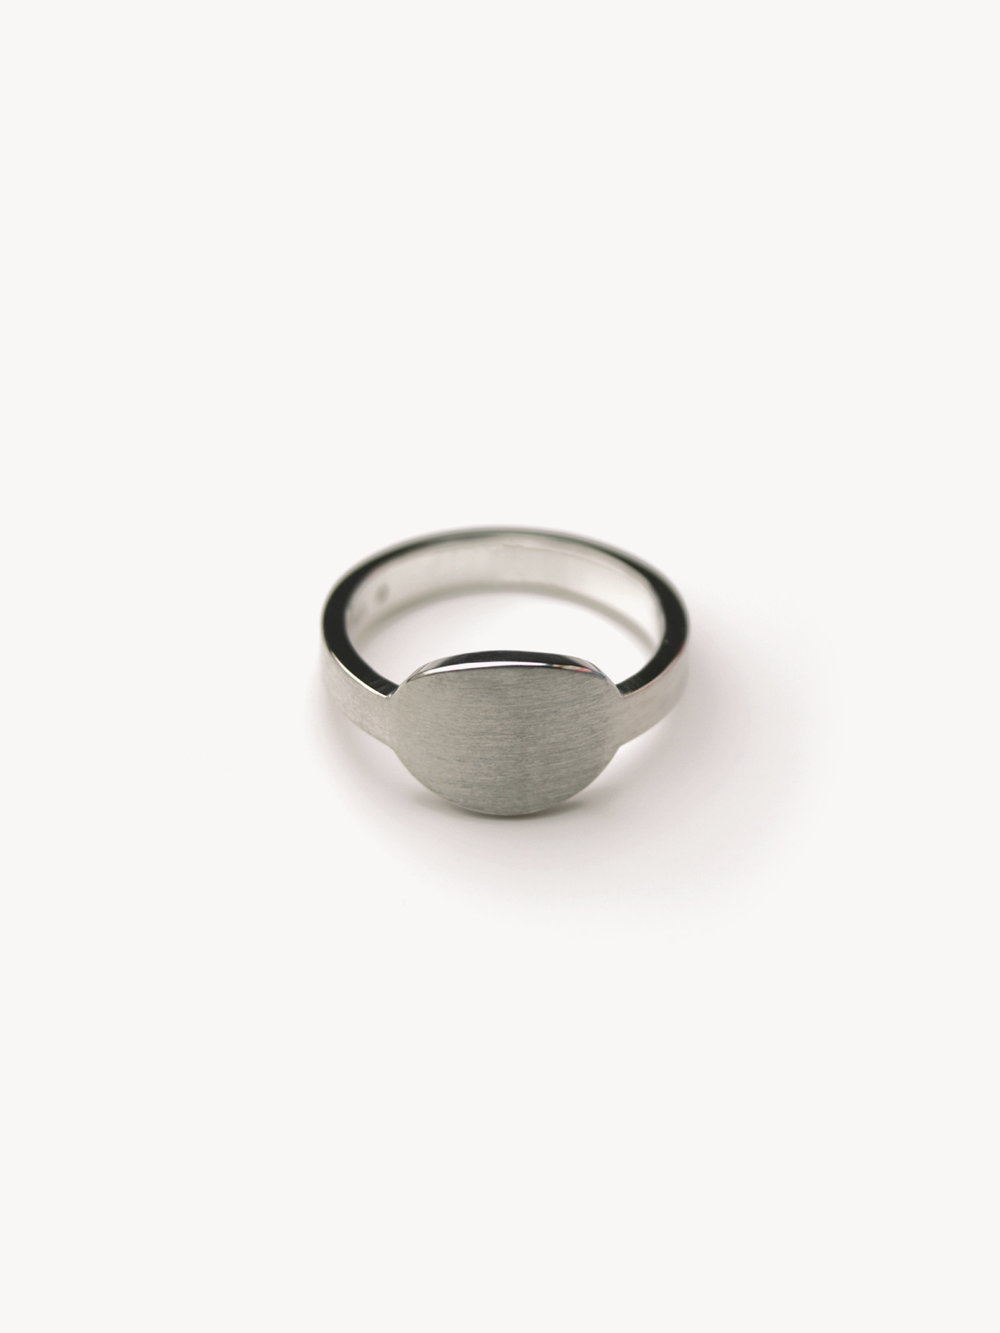 Siegelring Anda, rund mittel in 925 Silber  Signet ring Anda, round medium in sterling silver